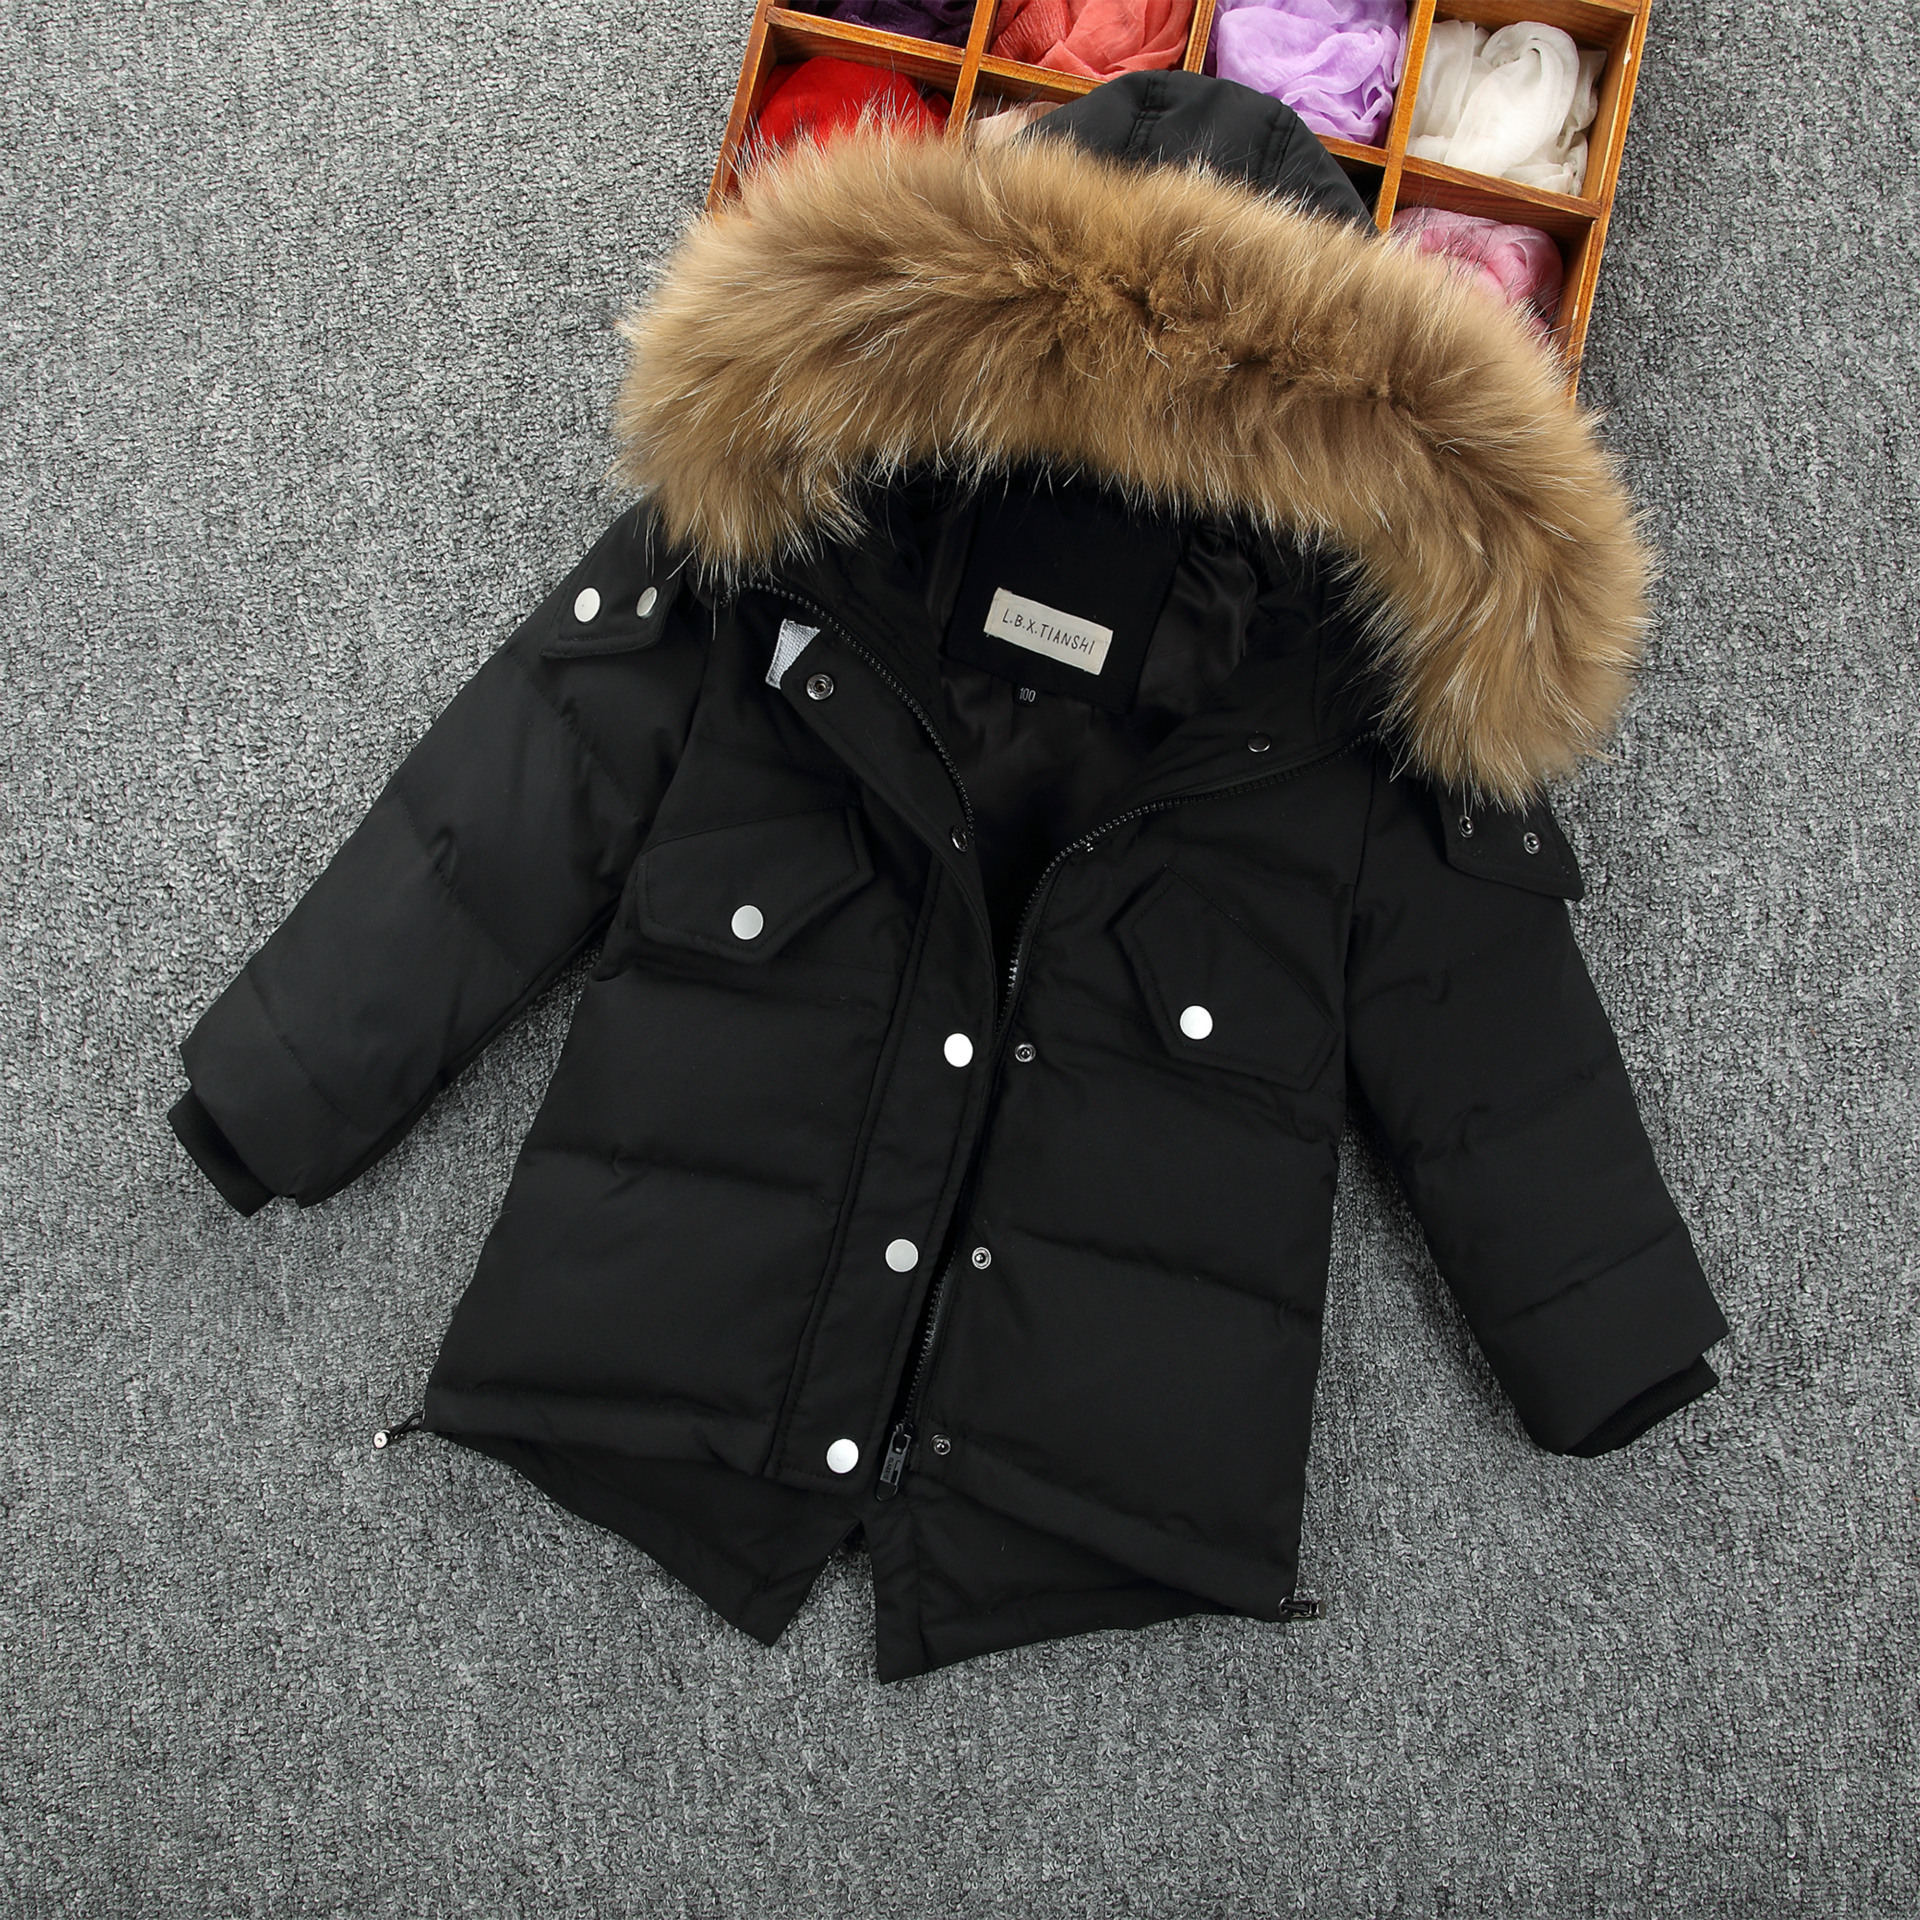 Children Winter Coat Boy White Duck Down Jackets Real Fur Hooded Warm Winter Kids Clothes Boys Outerwear Jackets -35 Degree buenos ninos thick winter children jackets girls boys coats hooded raccoon fur collar kids outerwear duck down padded snowsuit